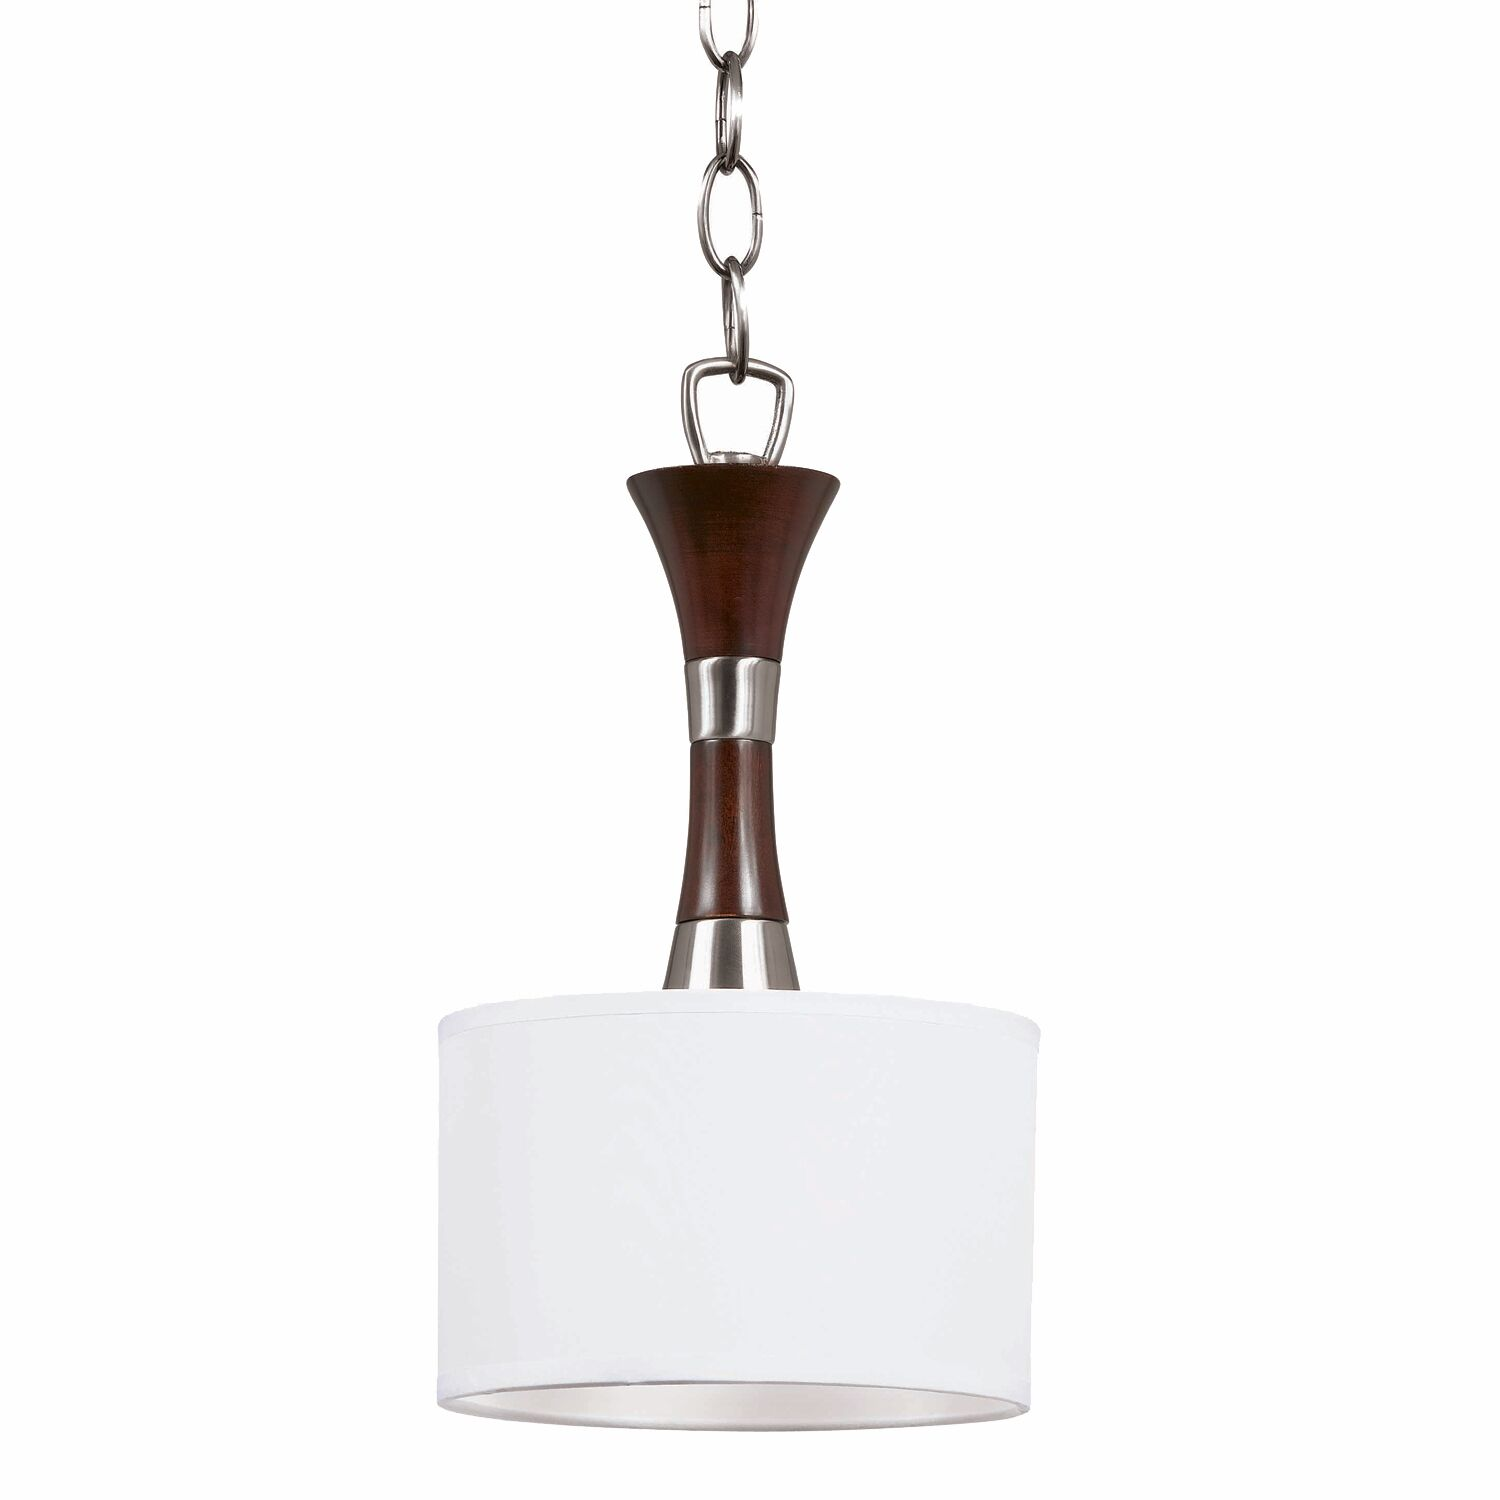 Marshfield 1-Light Drum Pendant